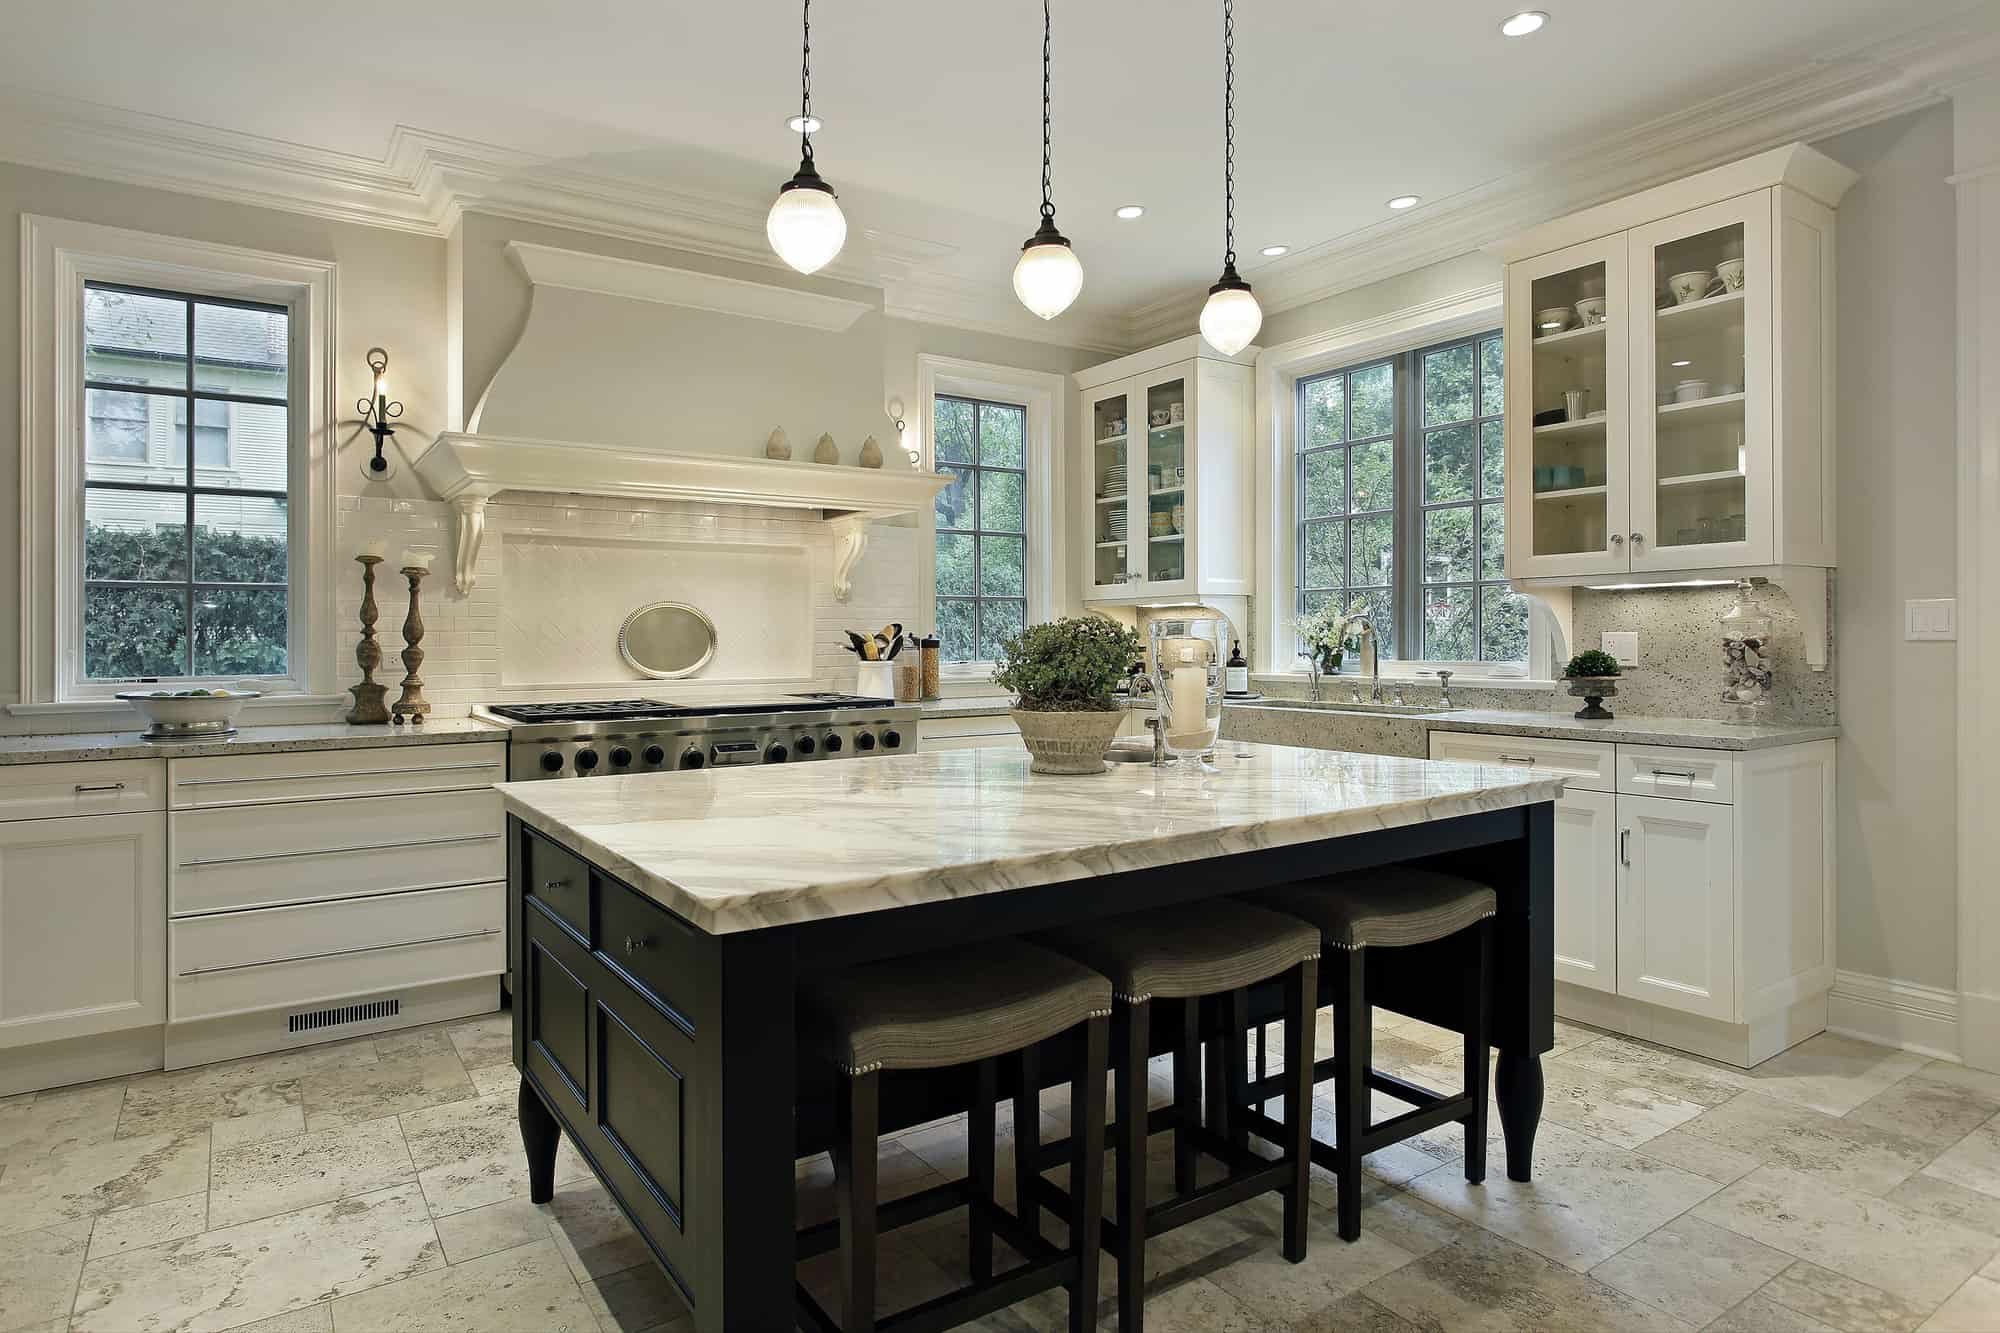 experienced kitchen remodel contractors palm desert kitchen remodel contractors kitchen remodeling palm desert california